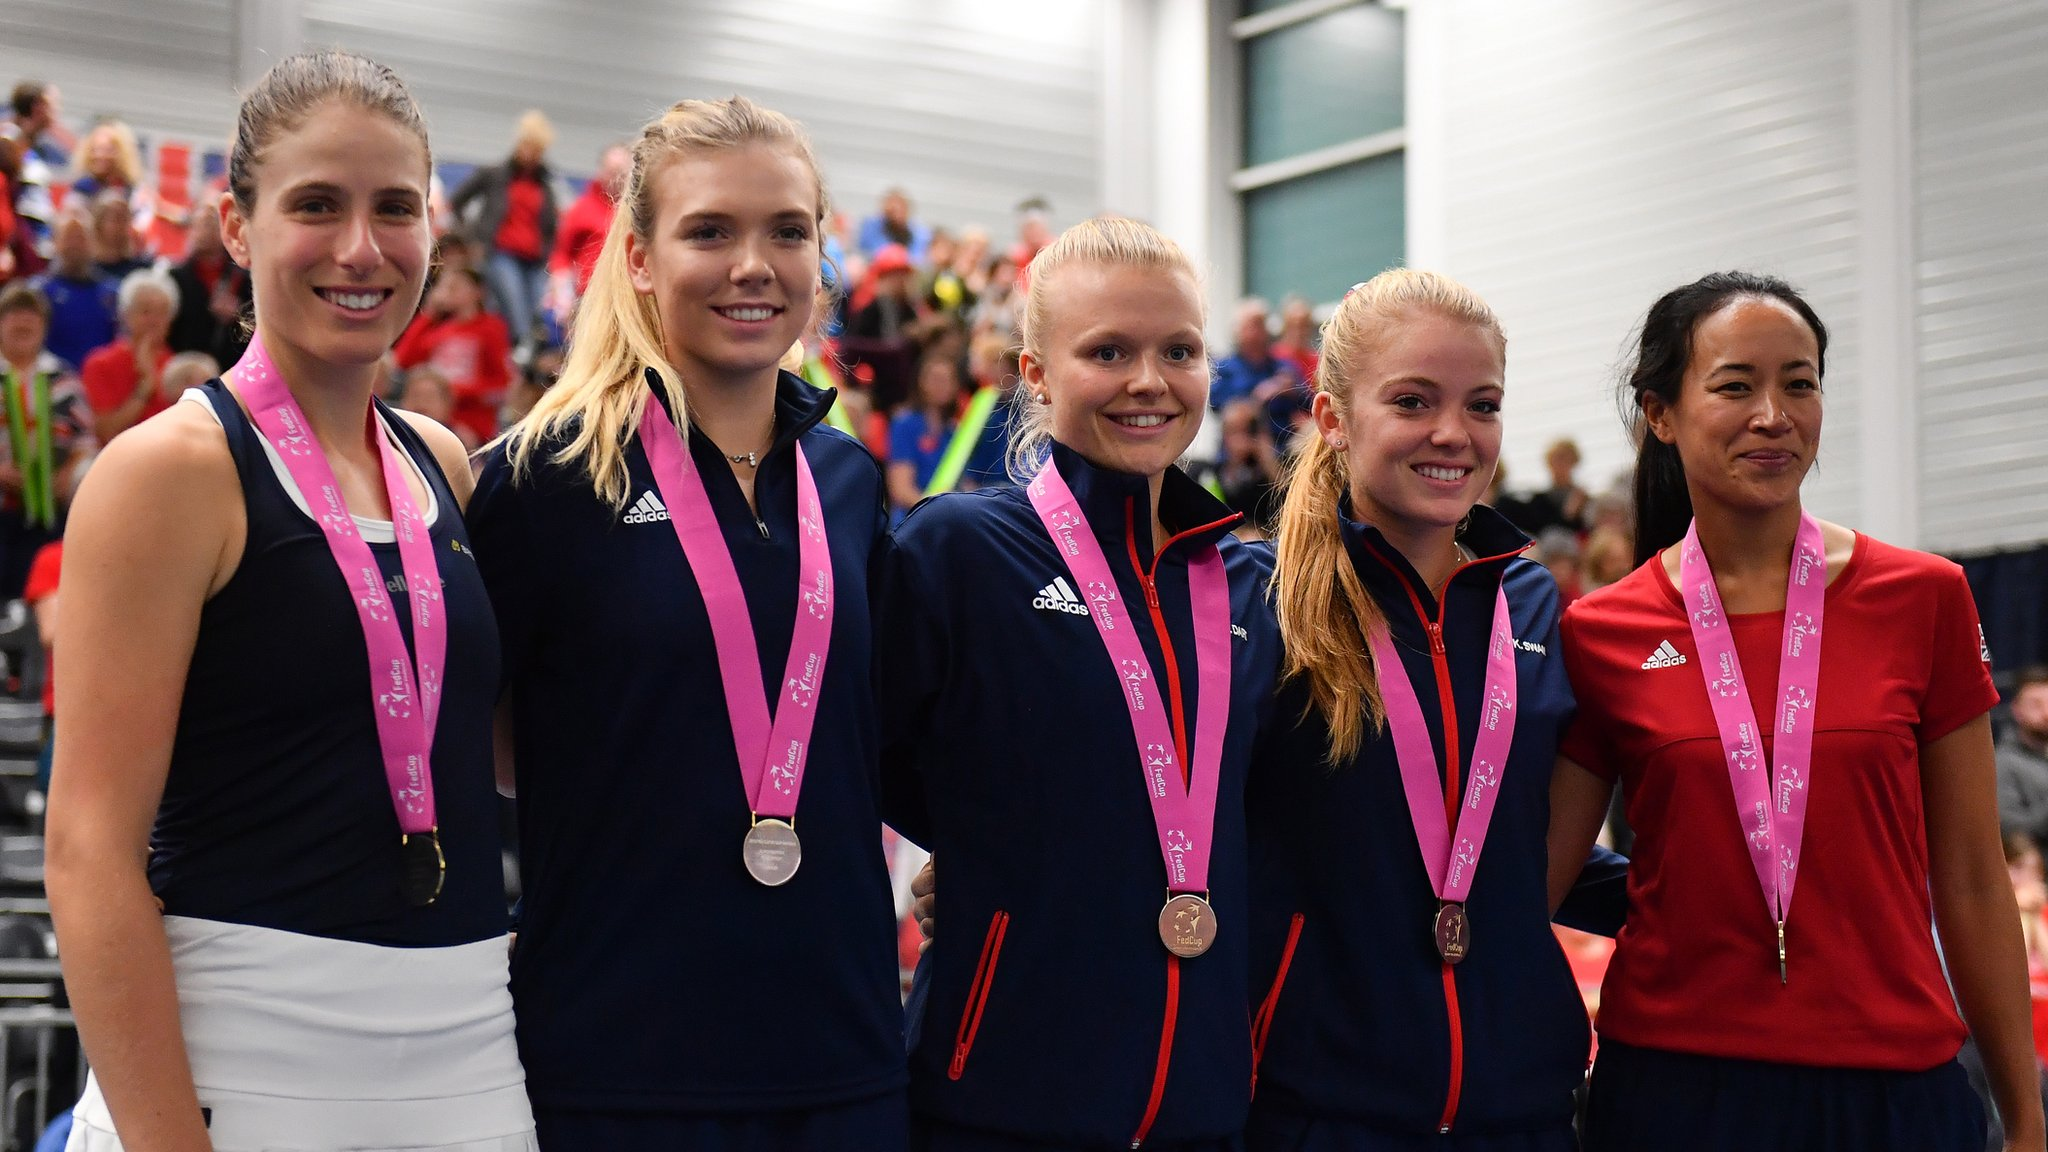 Fed Cup: Great Britain name unchanged team for World Group II play-off